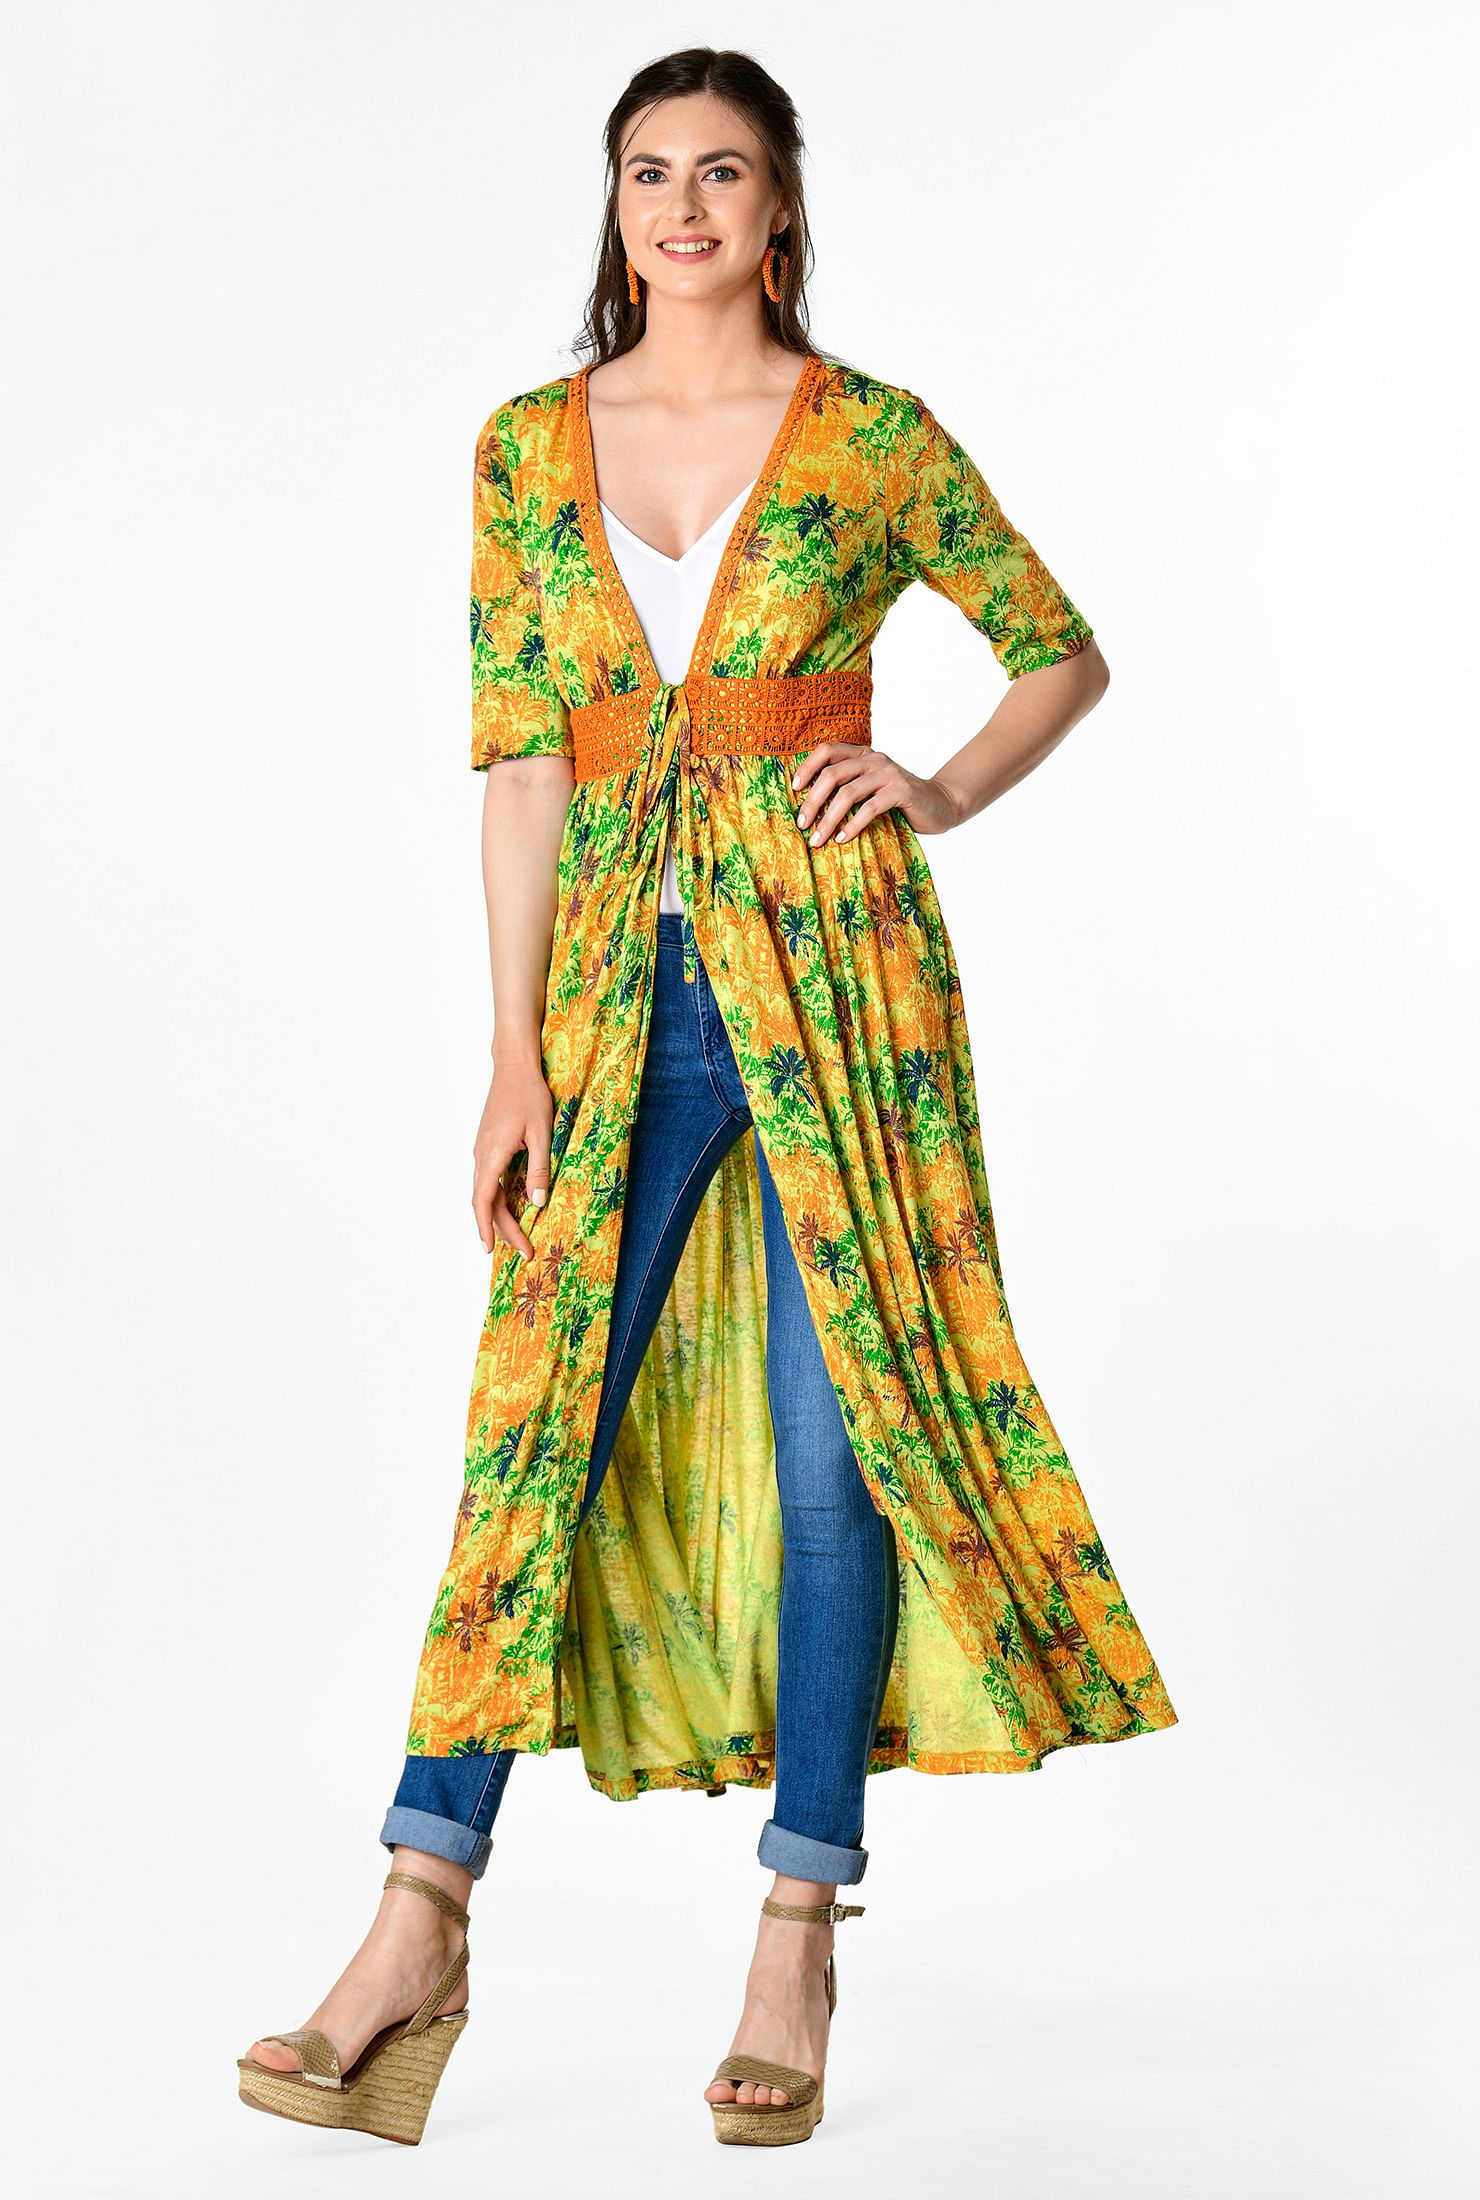 The Palm Print Cotton Knit Cover-Up Dress travel product recommended by Lindsay Wells on Lifney.